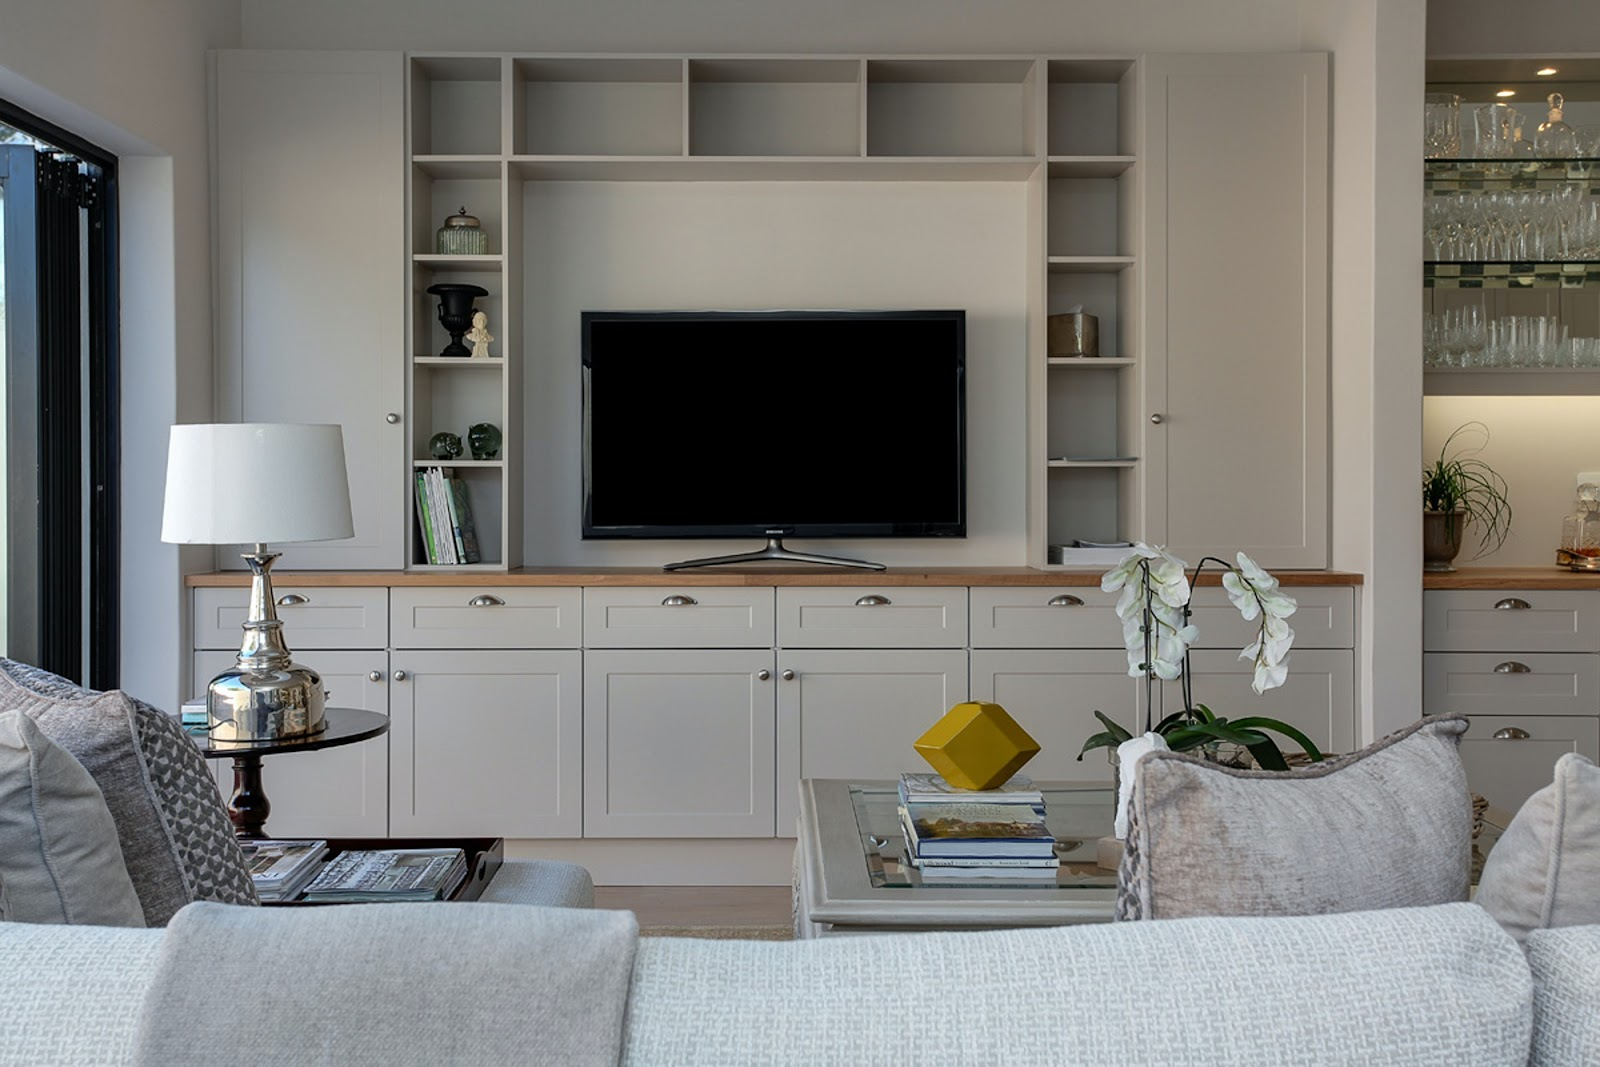 8 Tips To Help You Organize Your Home From Professional Organizers